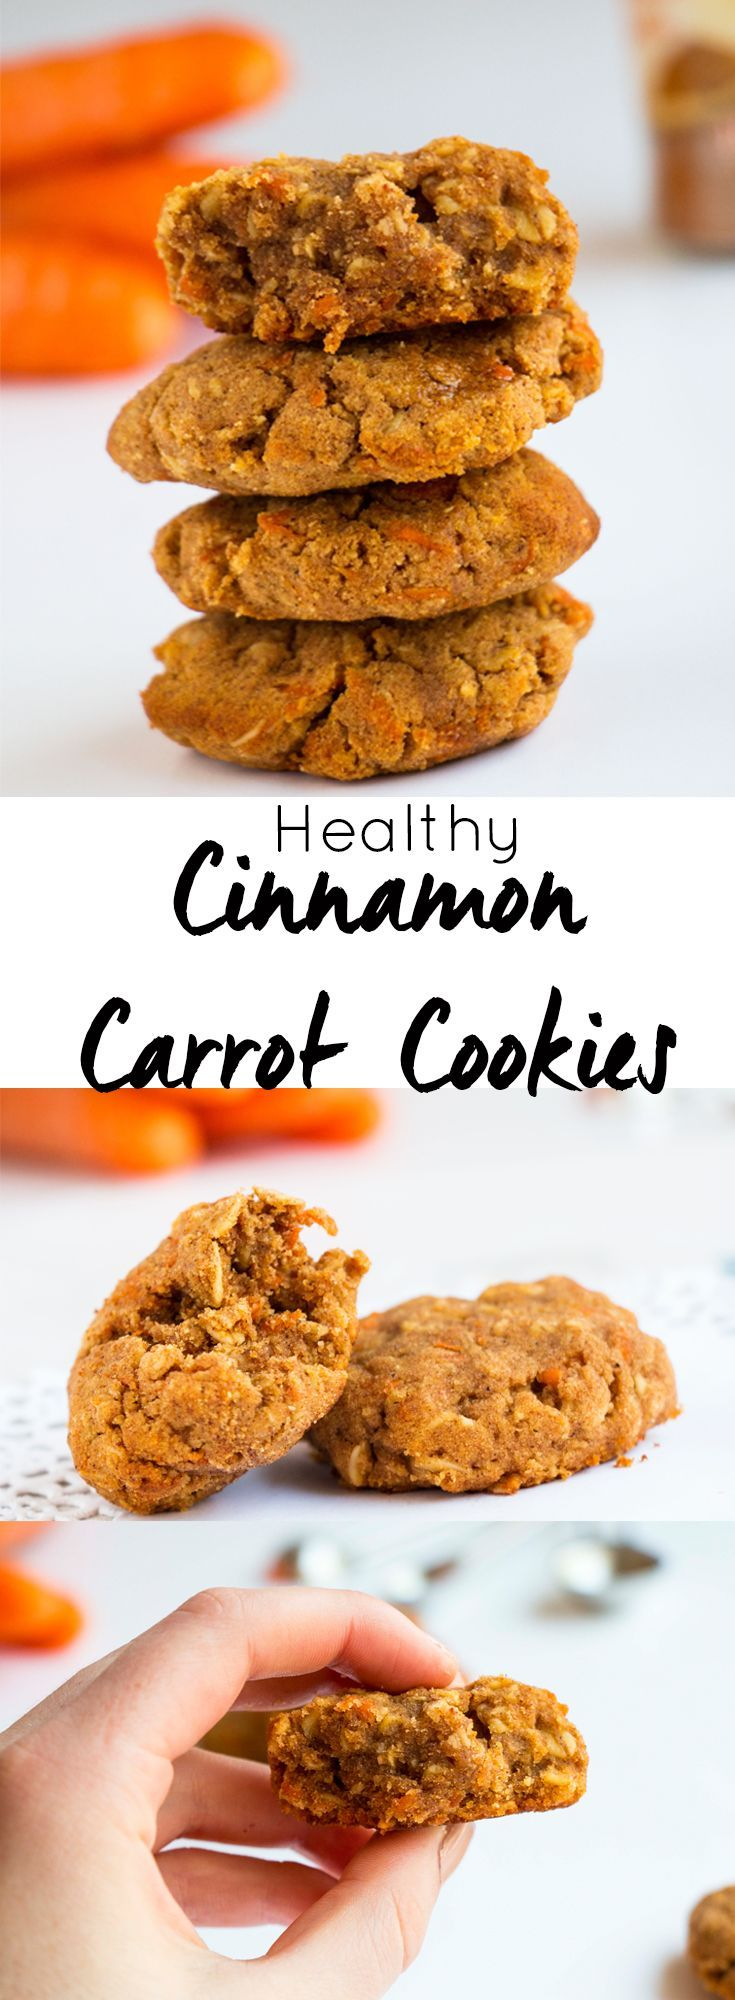 Quick and easy healthy Cinnamon Carrot Cookies. Moist, chewy and delicious. Sugar free, gluten free and with a vegan option. | healthy recipe ideas @xhealthyrecipex |